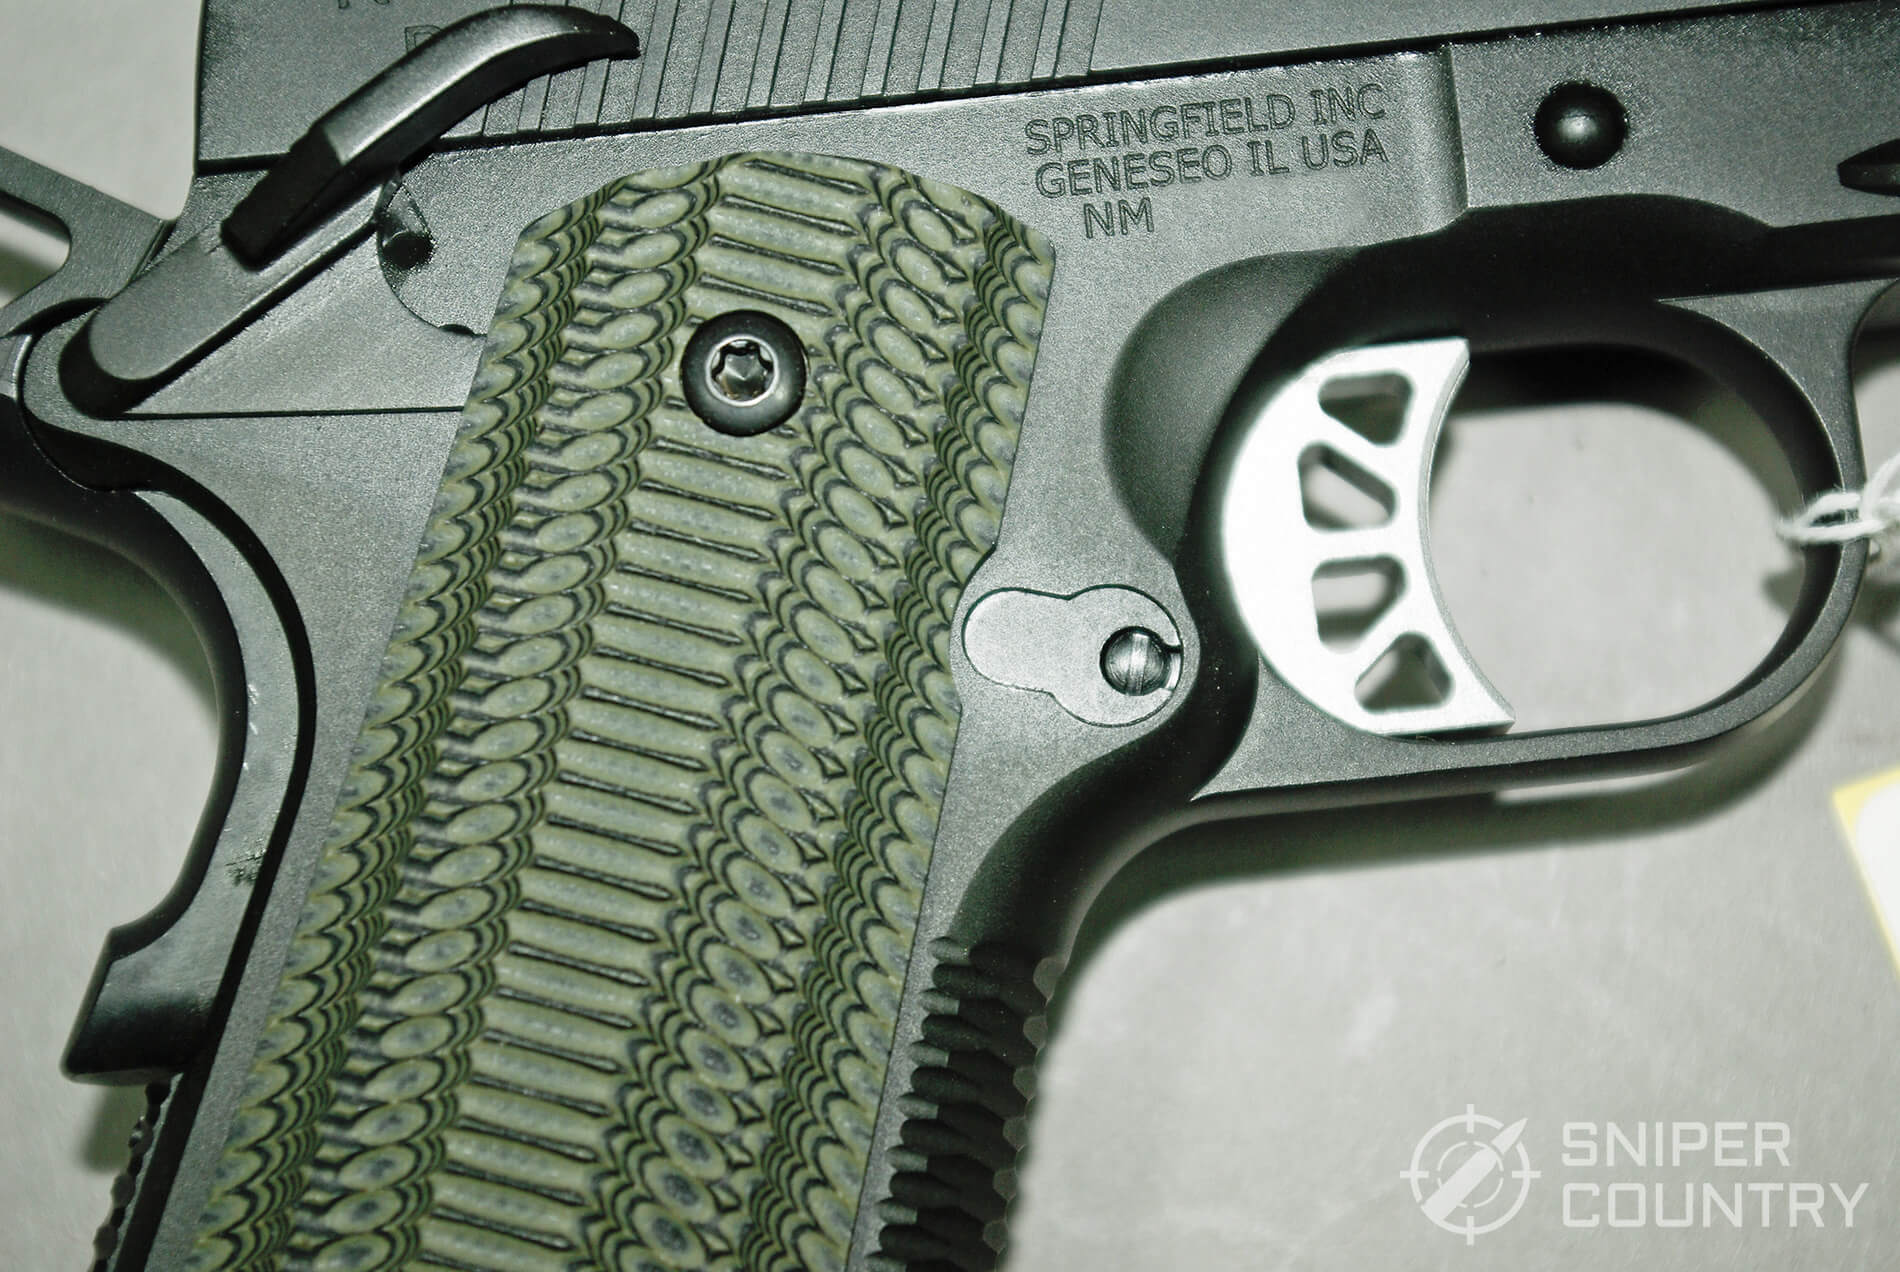 Springfield 1911 TRP 10mm Grip Safety